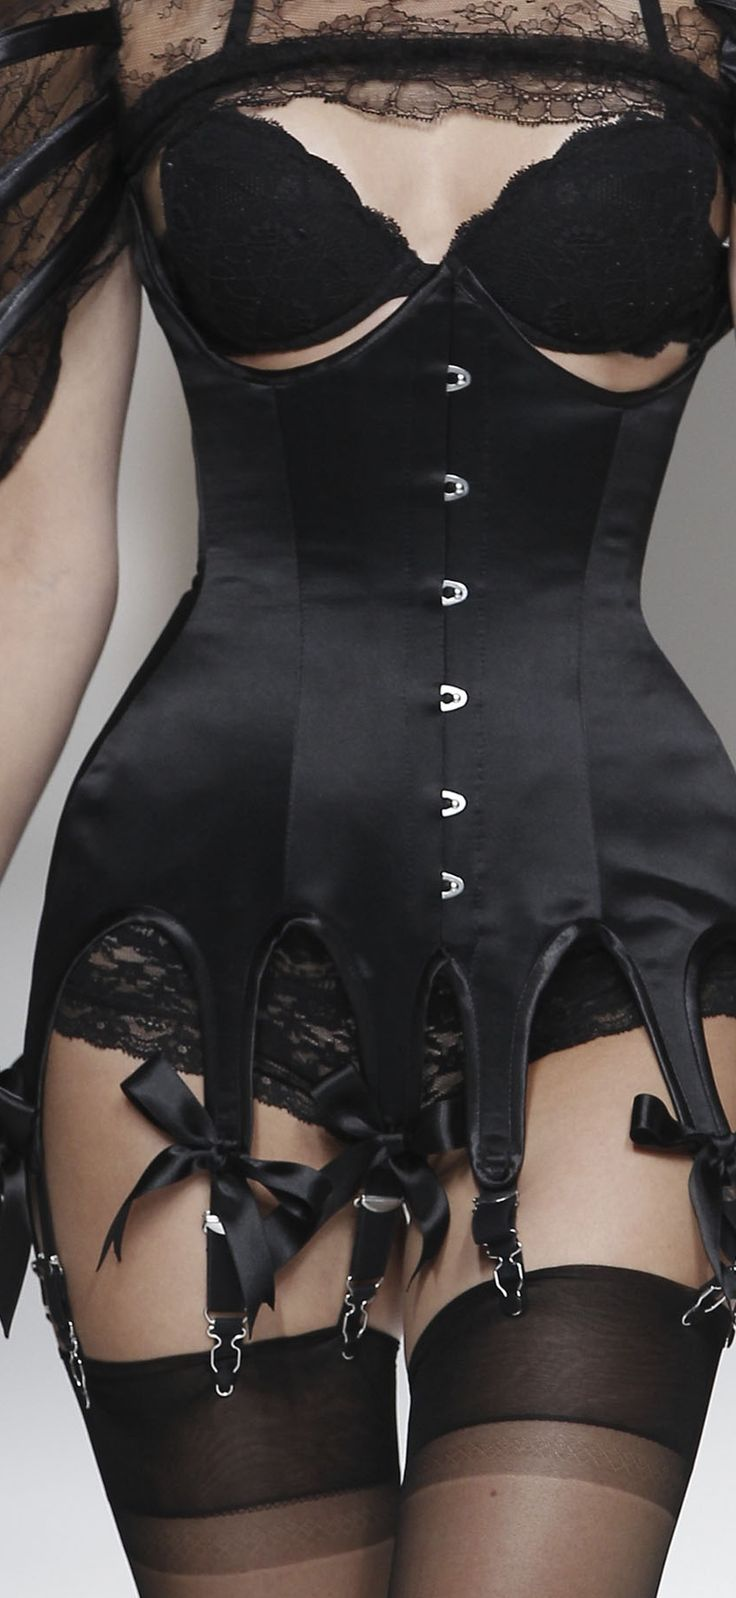 I have an underbust like this (somewhere), I just need to be able to wear it again!  Love bows, too.